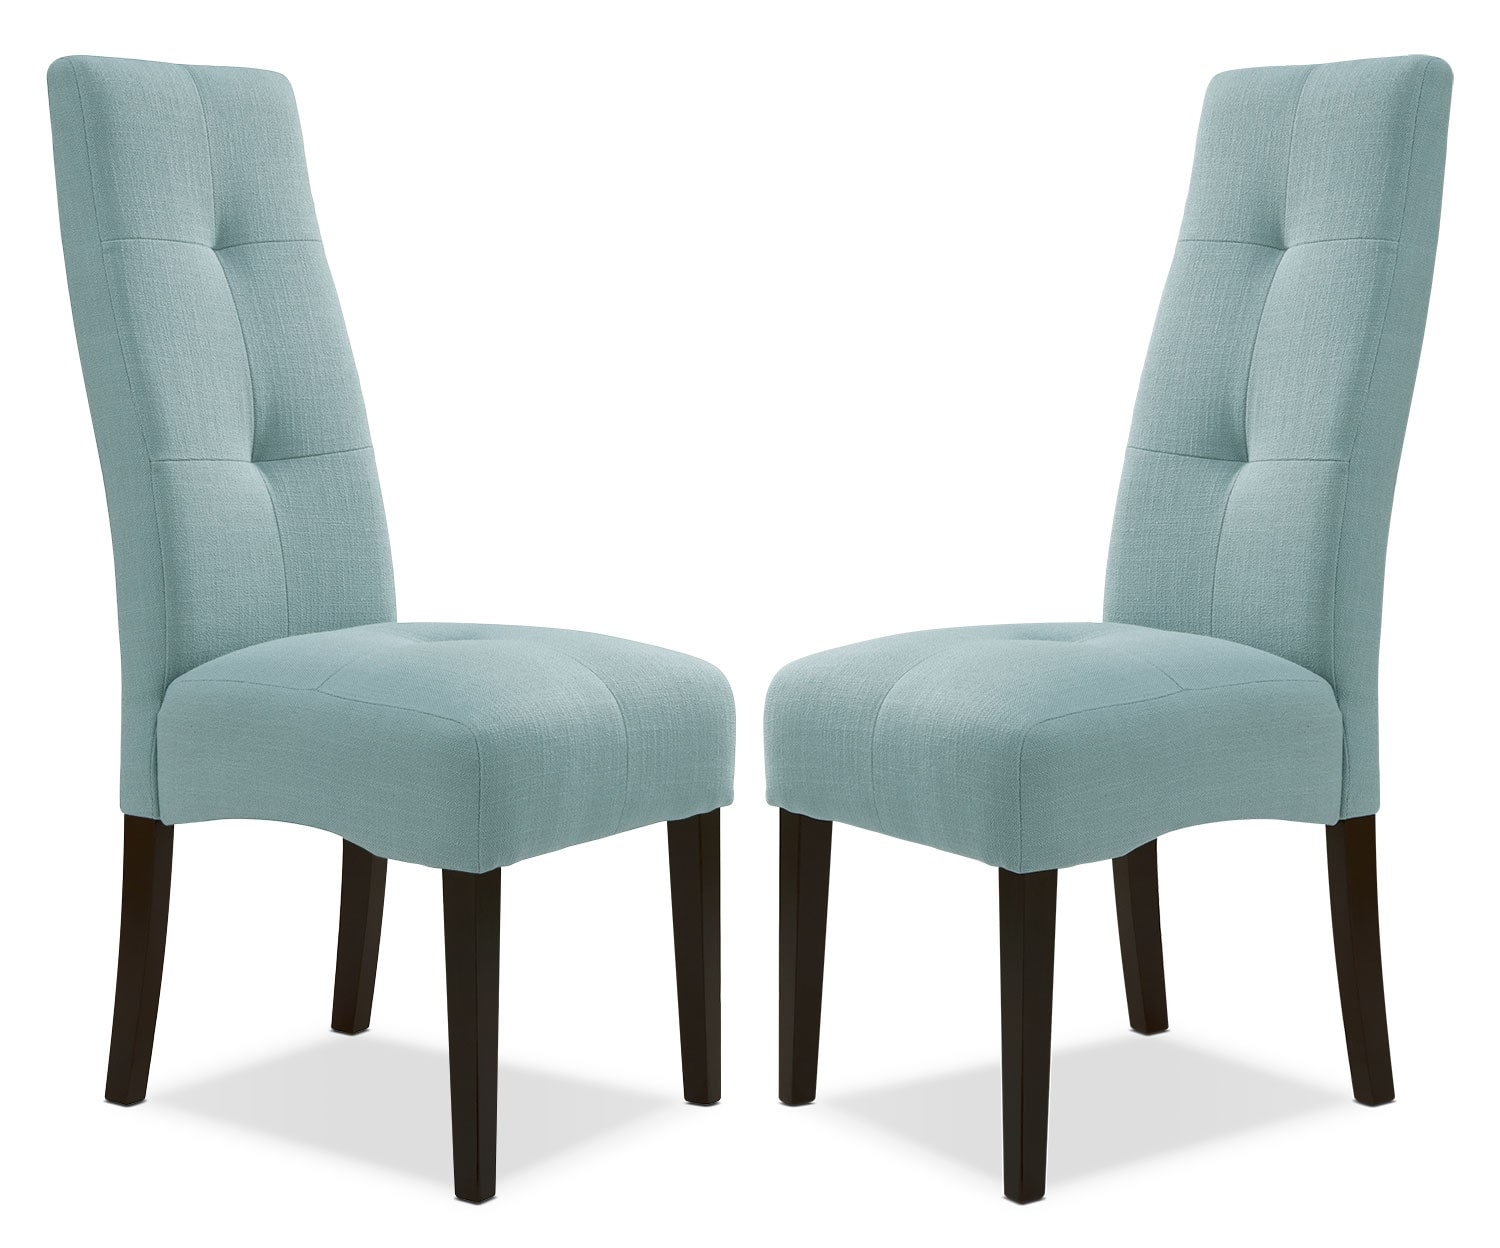 accent chairs target canada 28 images threshold  : 372230 from mkemenus.com size 1500 x 1248 jpeg 293kB